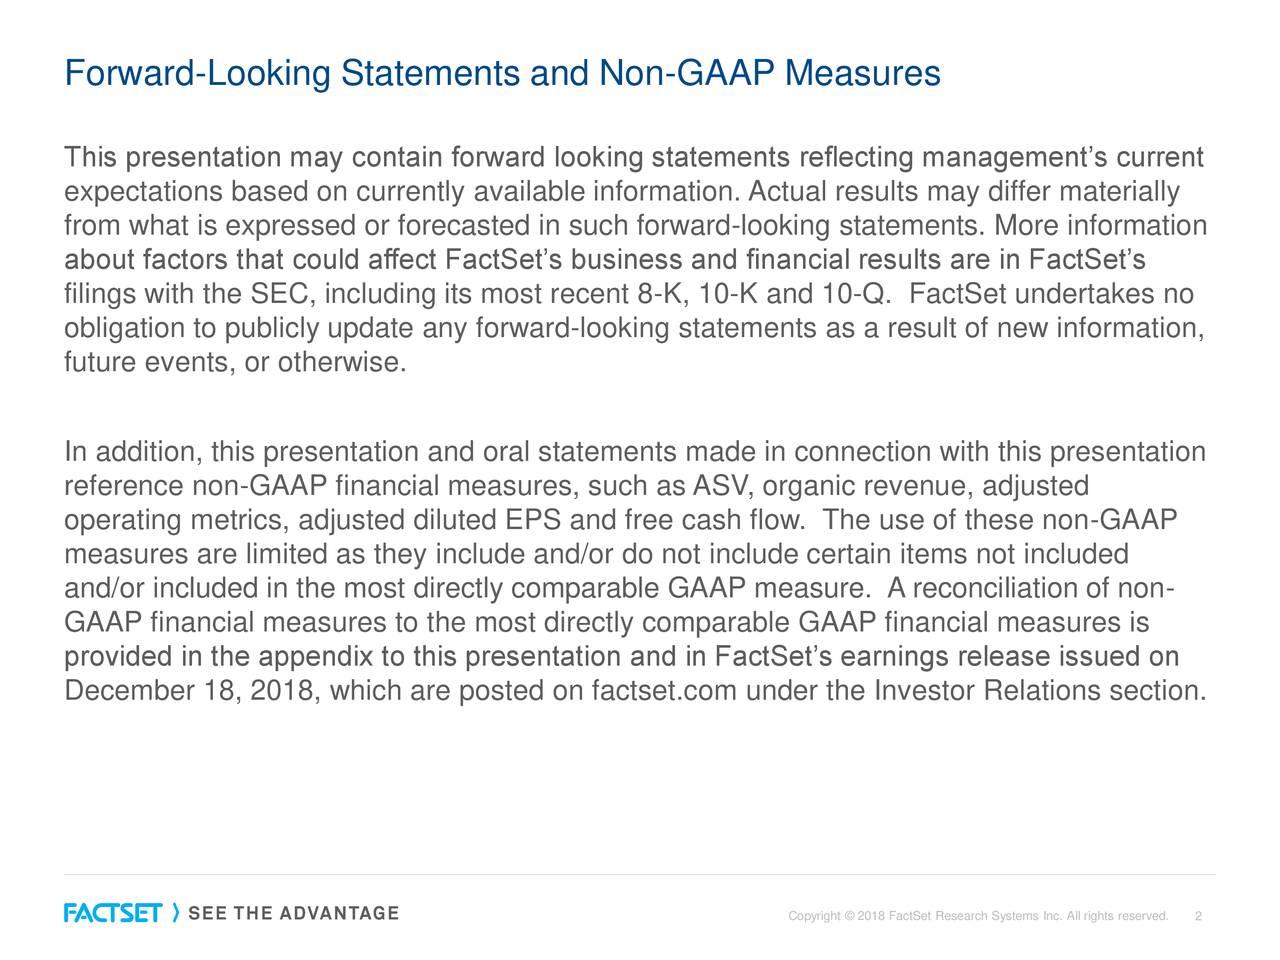 This presentation may contain forward looking statements reflecting management's current expectations based on currently available information. Actual results may differ materially from what is expressed or forecasted in such forward-looking statements. More information about factors that could affect FactSet's business and financial results are in FactSet's filings with the SEC, including its most recent 8-K, 10-K and 10-Q. FactSet undertakes no obligation to publicly update any forward-looking statements as a result of new information, future events, or otherwise. In addition, this presentation and oral statements made in connection with this presentation reference non-GAAP financial measures, such as ASV, organic revenue, adjusted operating metrics, adjusted diluted EPS and free cash flow. The use of these non-GAAP measures are limited as they include and/or do not include certain items not included and/or included in the most directly comparable GAAP measure. A reconciliation of non- GAAP financial measures to the most directly comparable GAAP financial measures is provided in the appendix to this presentation and in FactSet's earnings release issued on December 18, 2018, which are posted on factset.com under the Investor Relations section. Copyright © 2018 FactSet Research 2ystems Inc. All rights reserved.